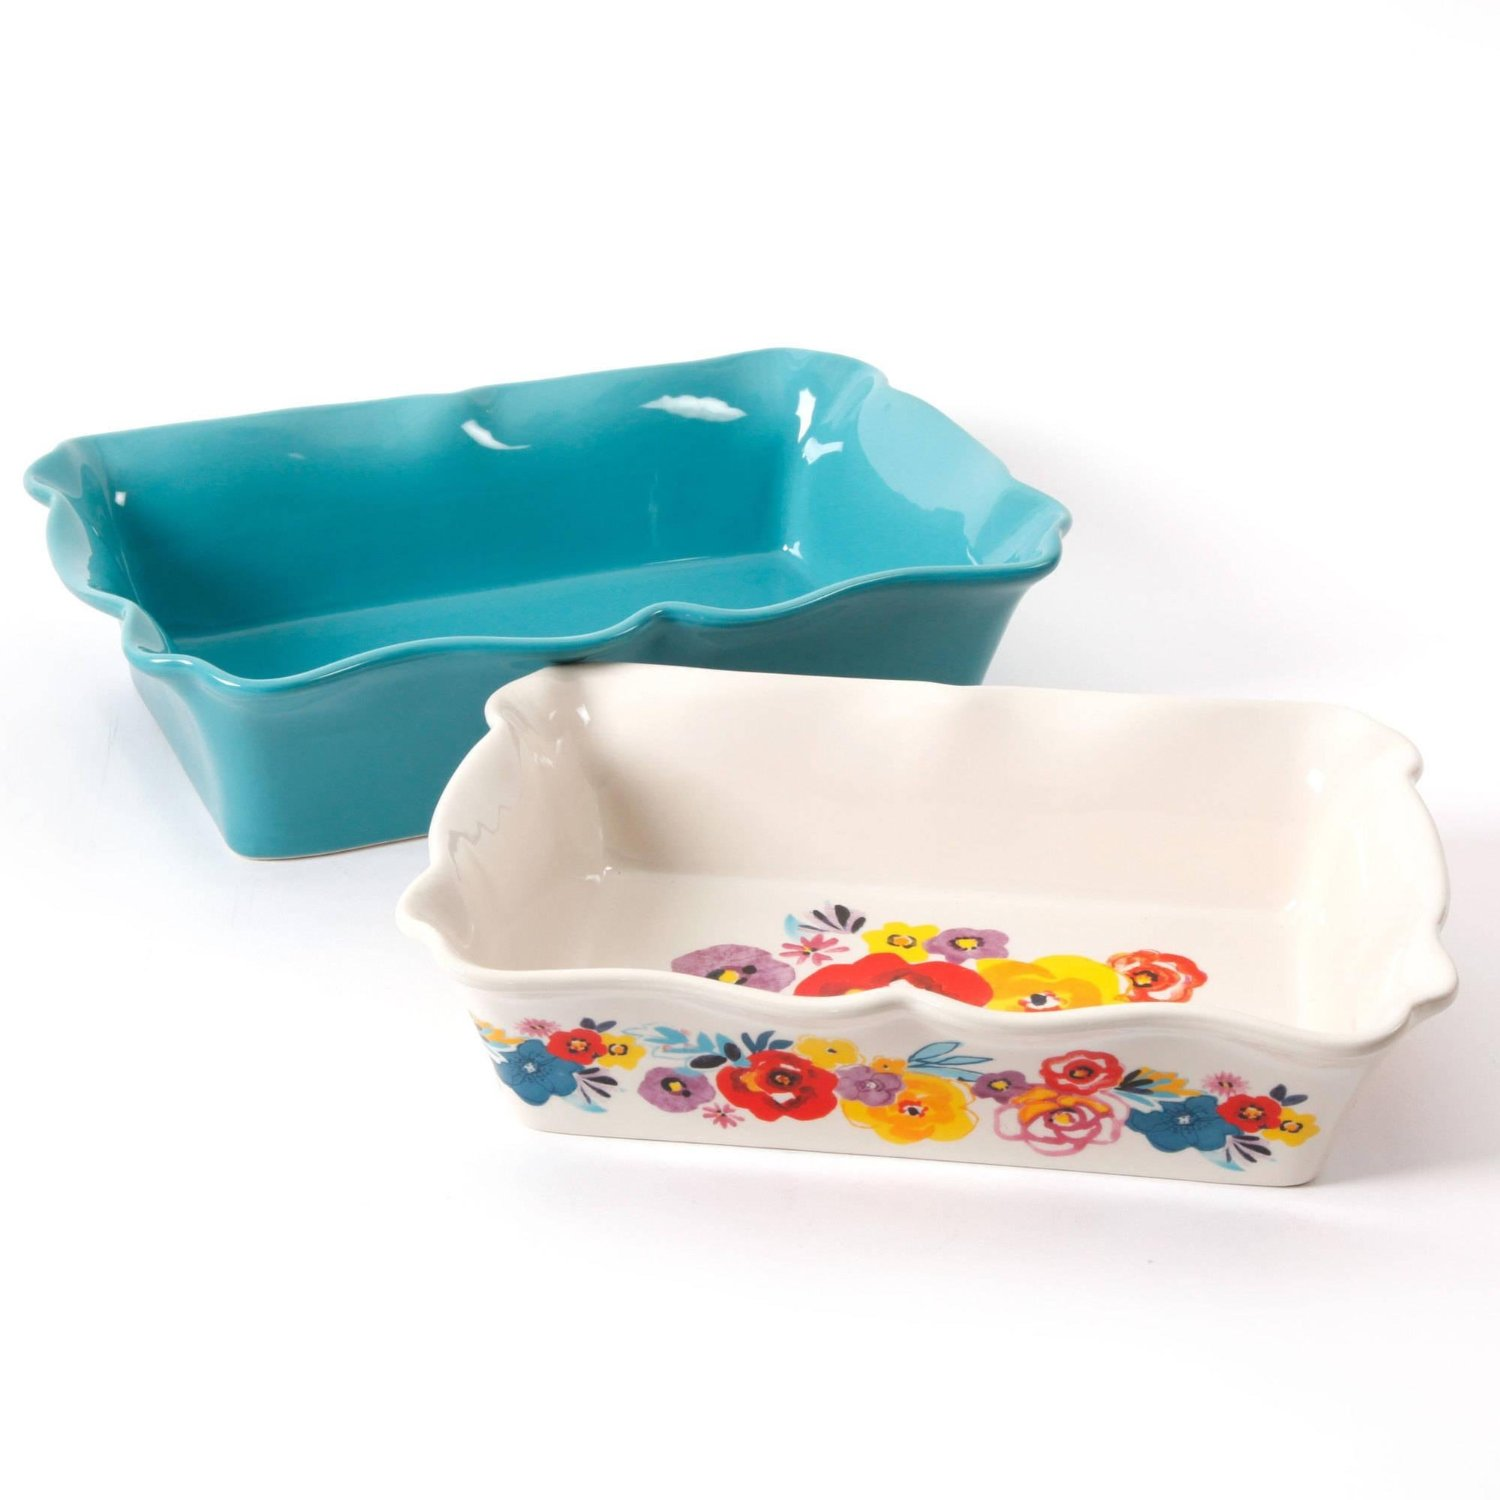 10+ Beautiful Casserole Pans to Feast your Eyes On| www.growingupgabel.com